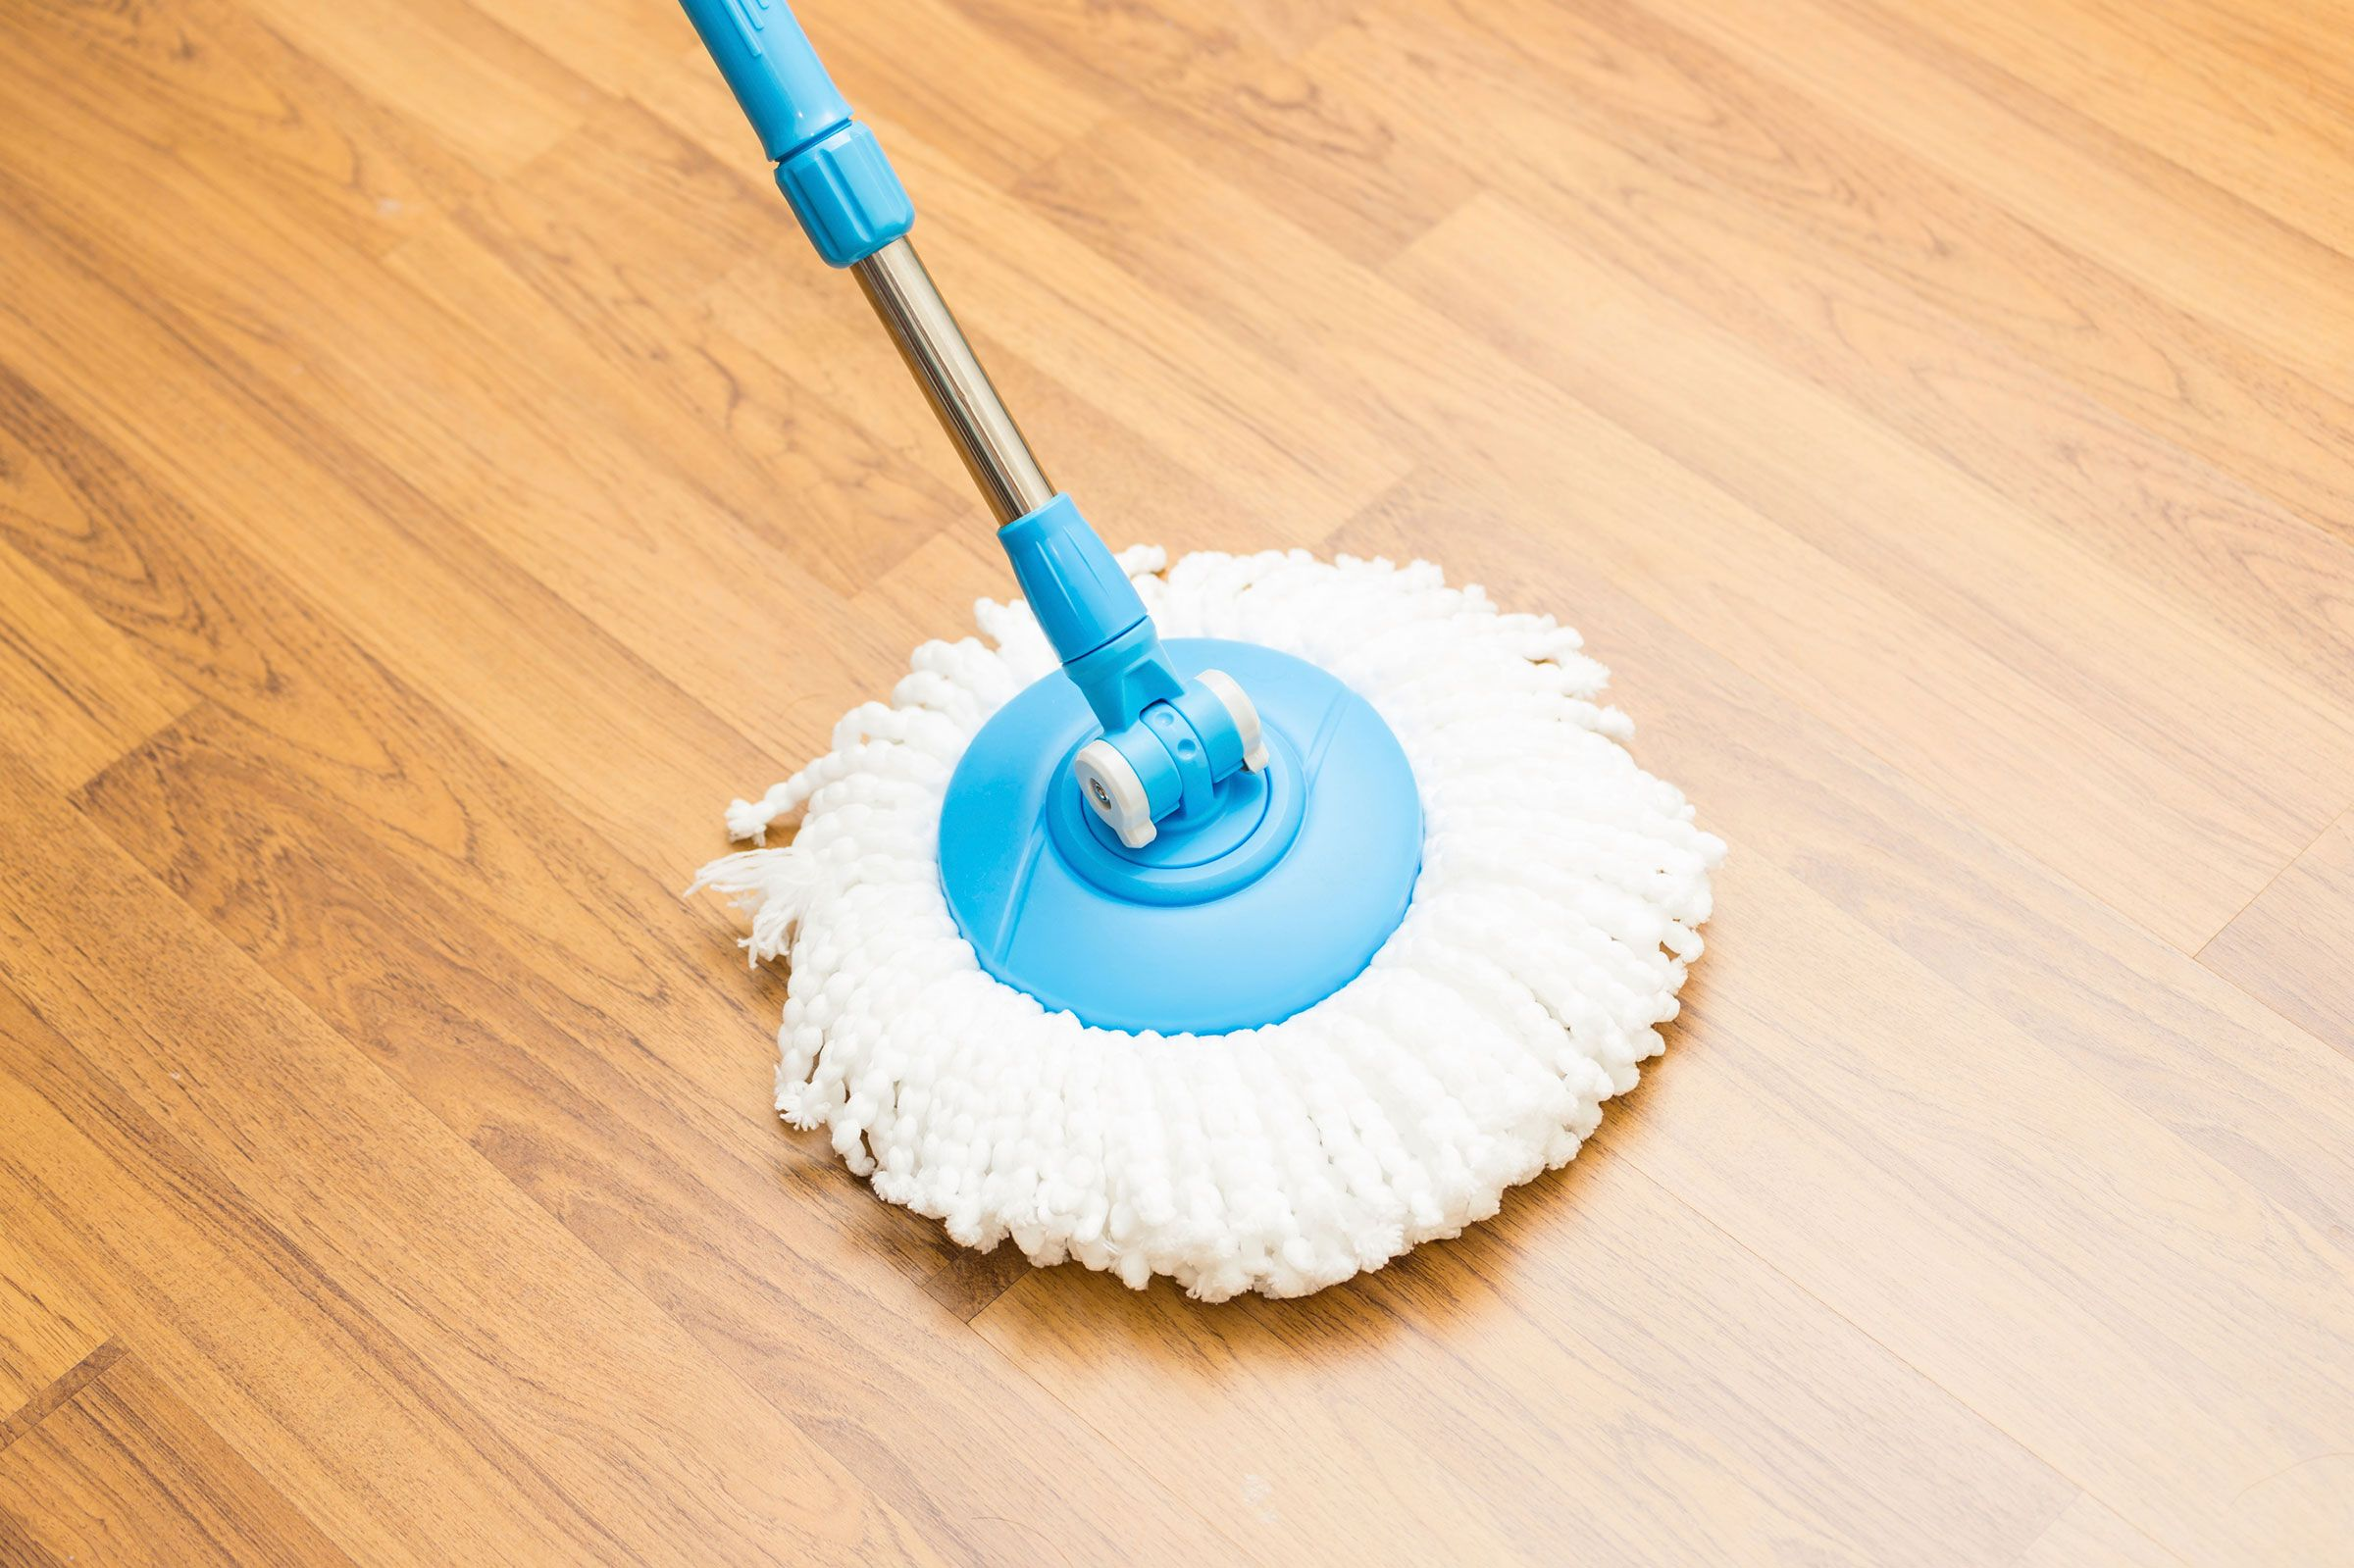 How To Clean Vinyl Floors 11 Tricks